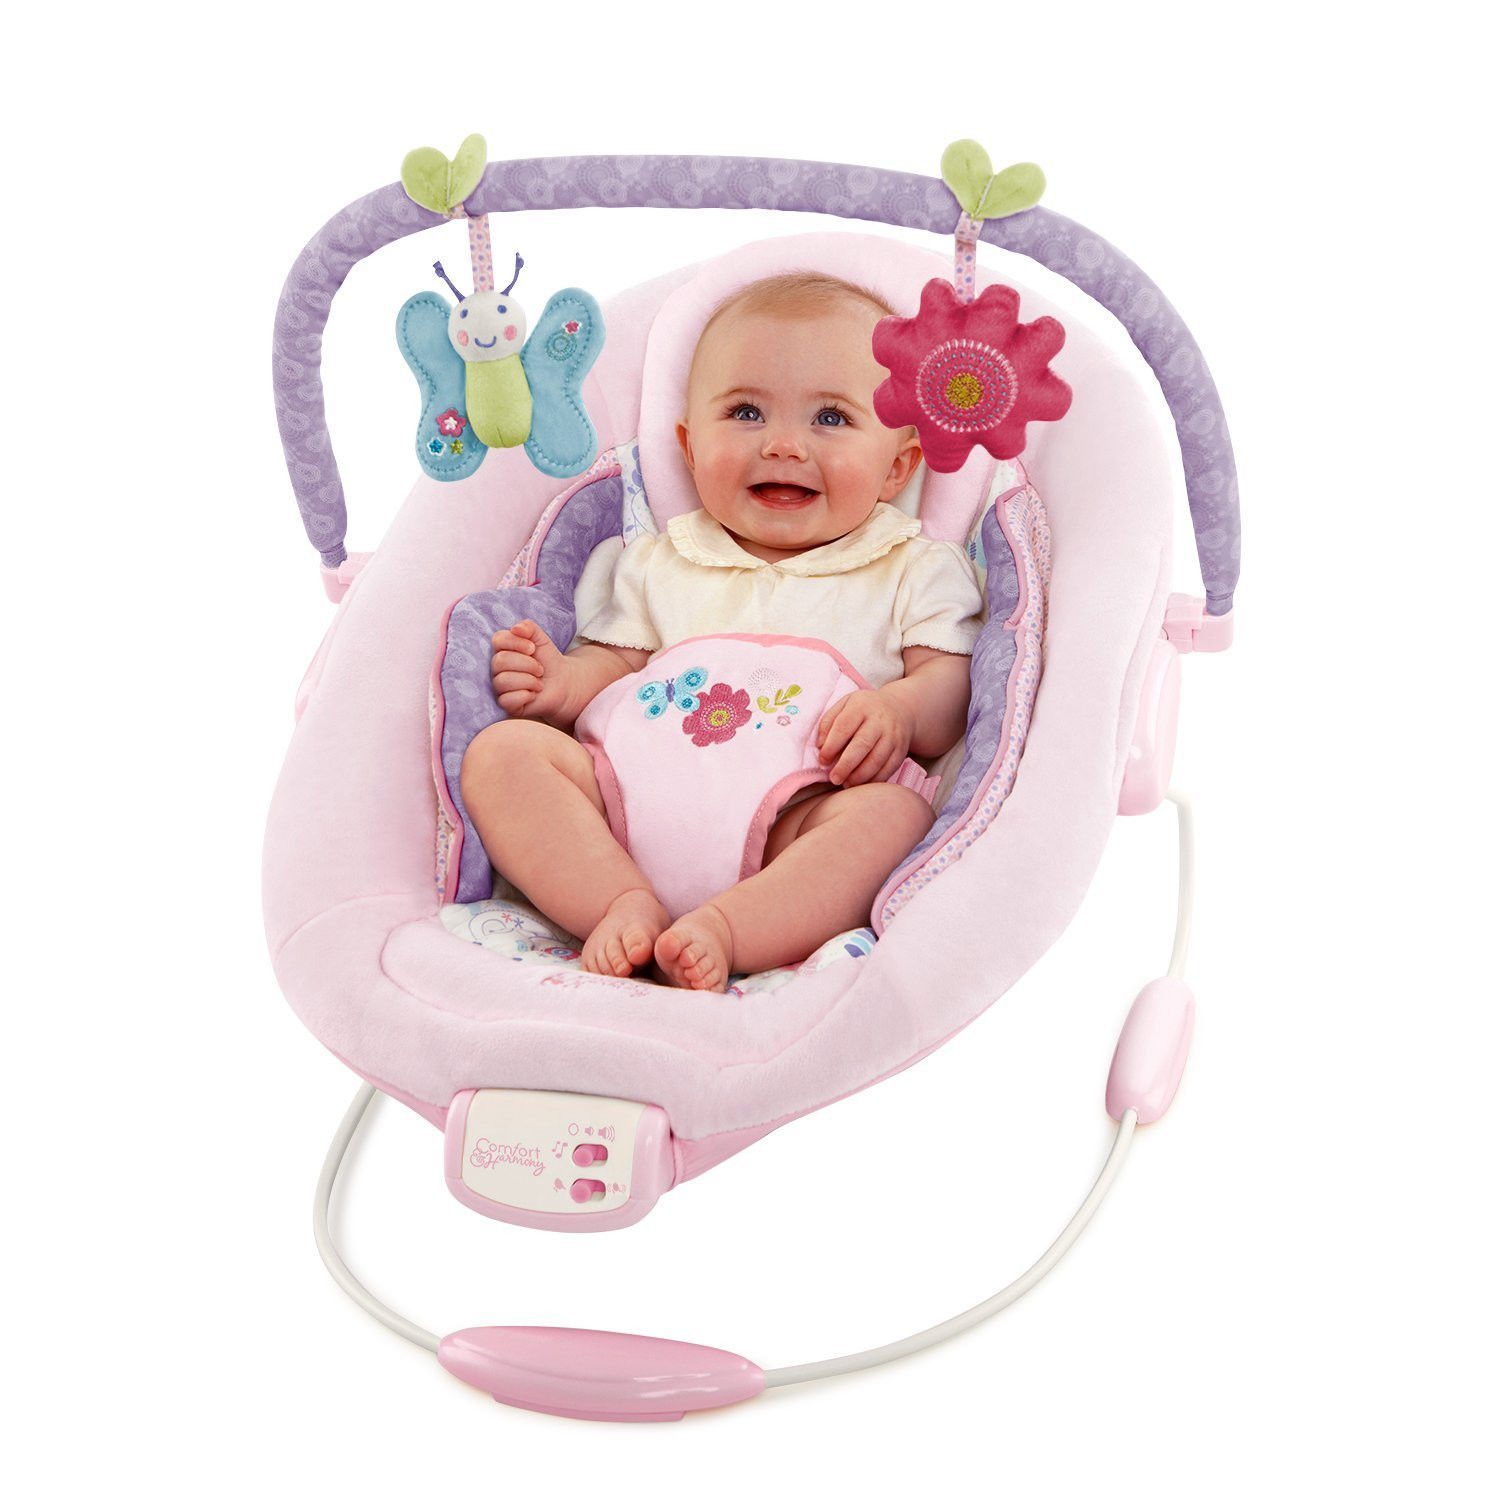 Baby Bouncer Seat Chair Cradling Comfort Infant Portable